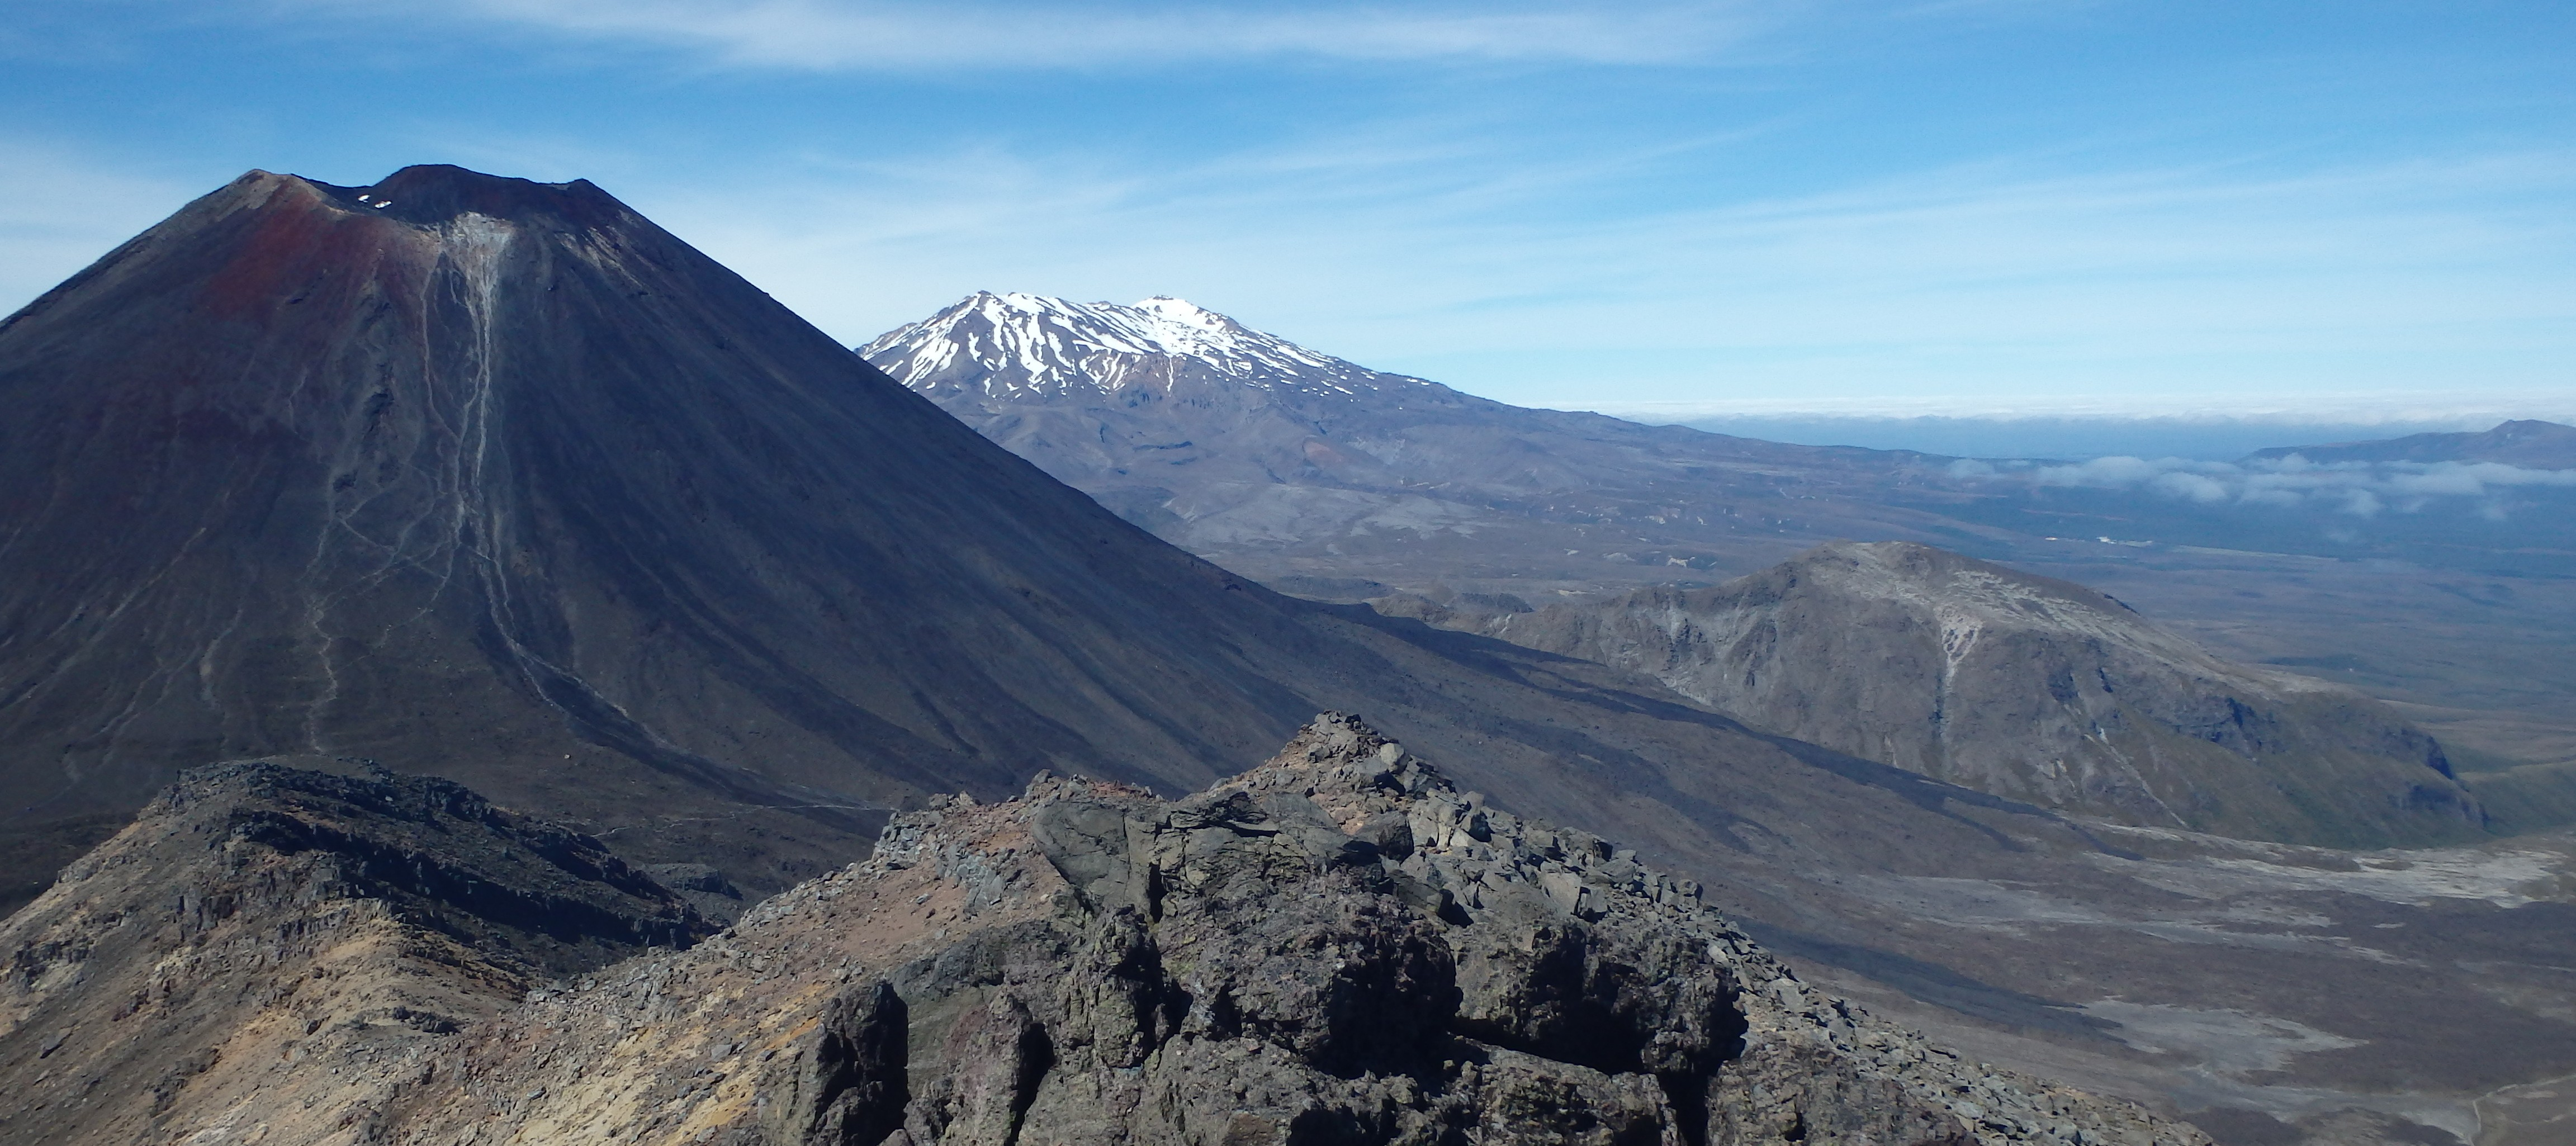 Mount Doom (Mount Ngauruhoe) from the Tongariro Summit